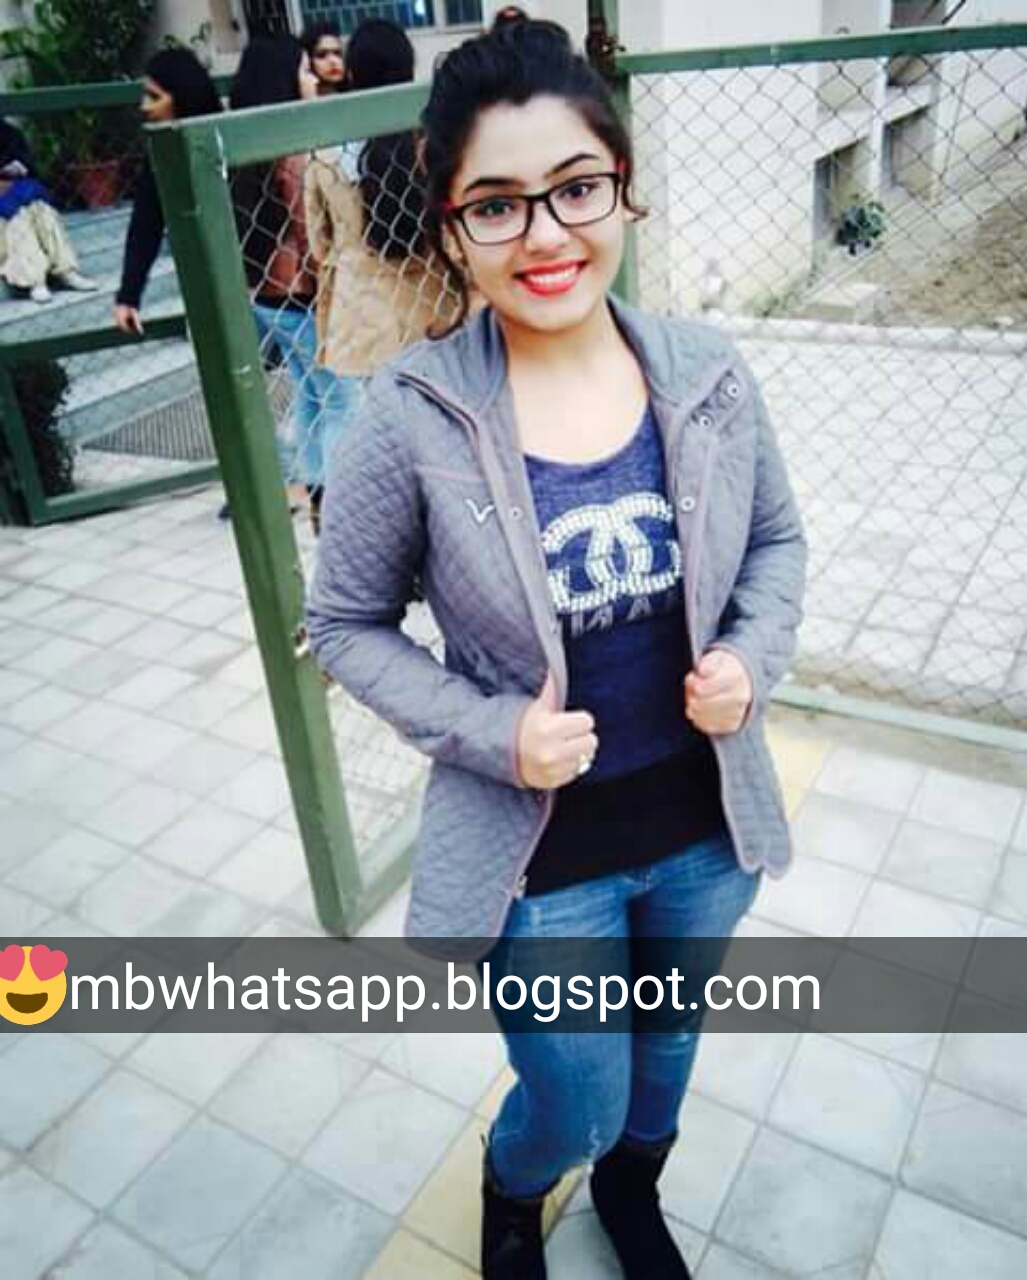 islamabad girls numbers islamabad girl wallpaper girl number 2018 whatsapp no islamabad university girls imo skype i d islamabad hot girl facebook real